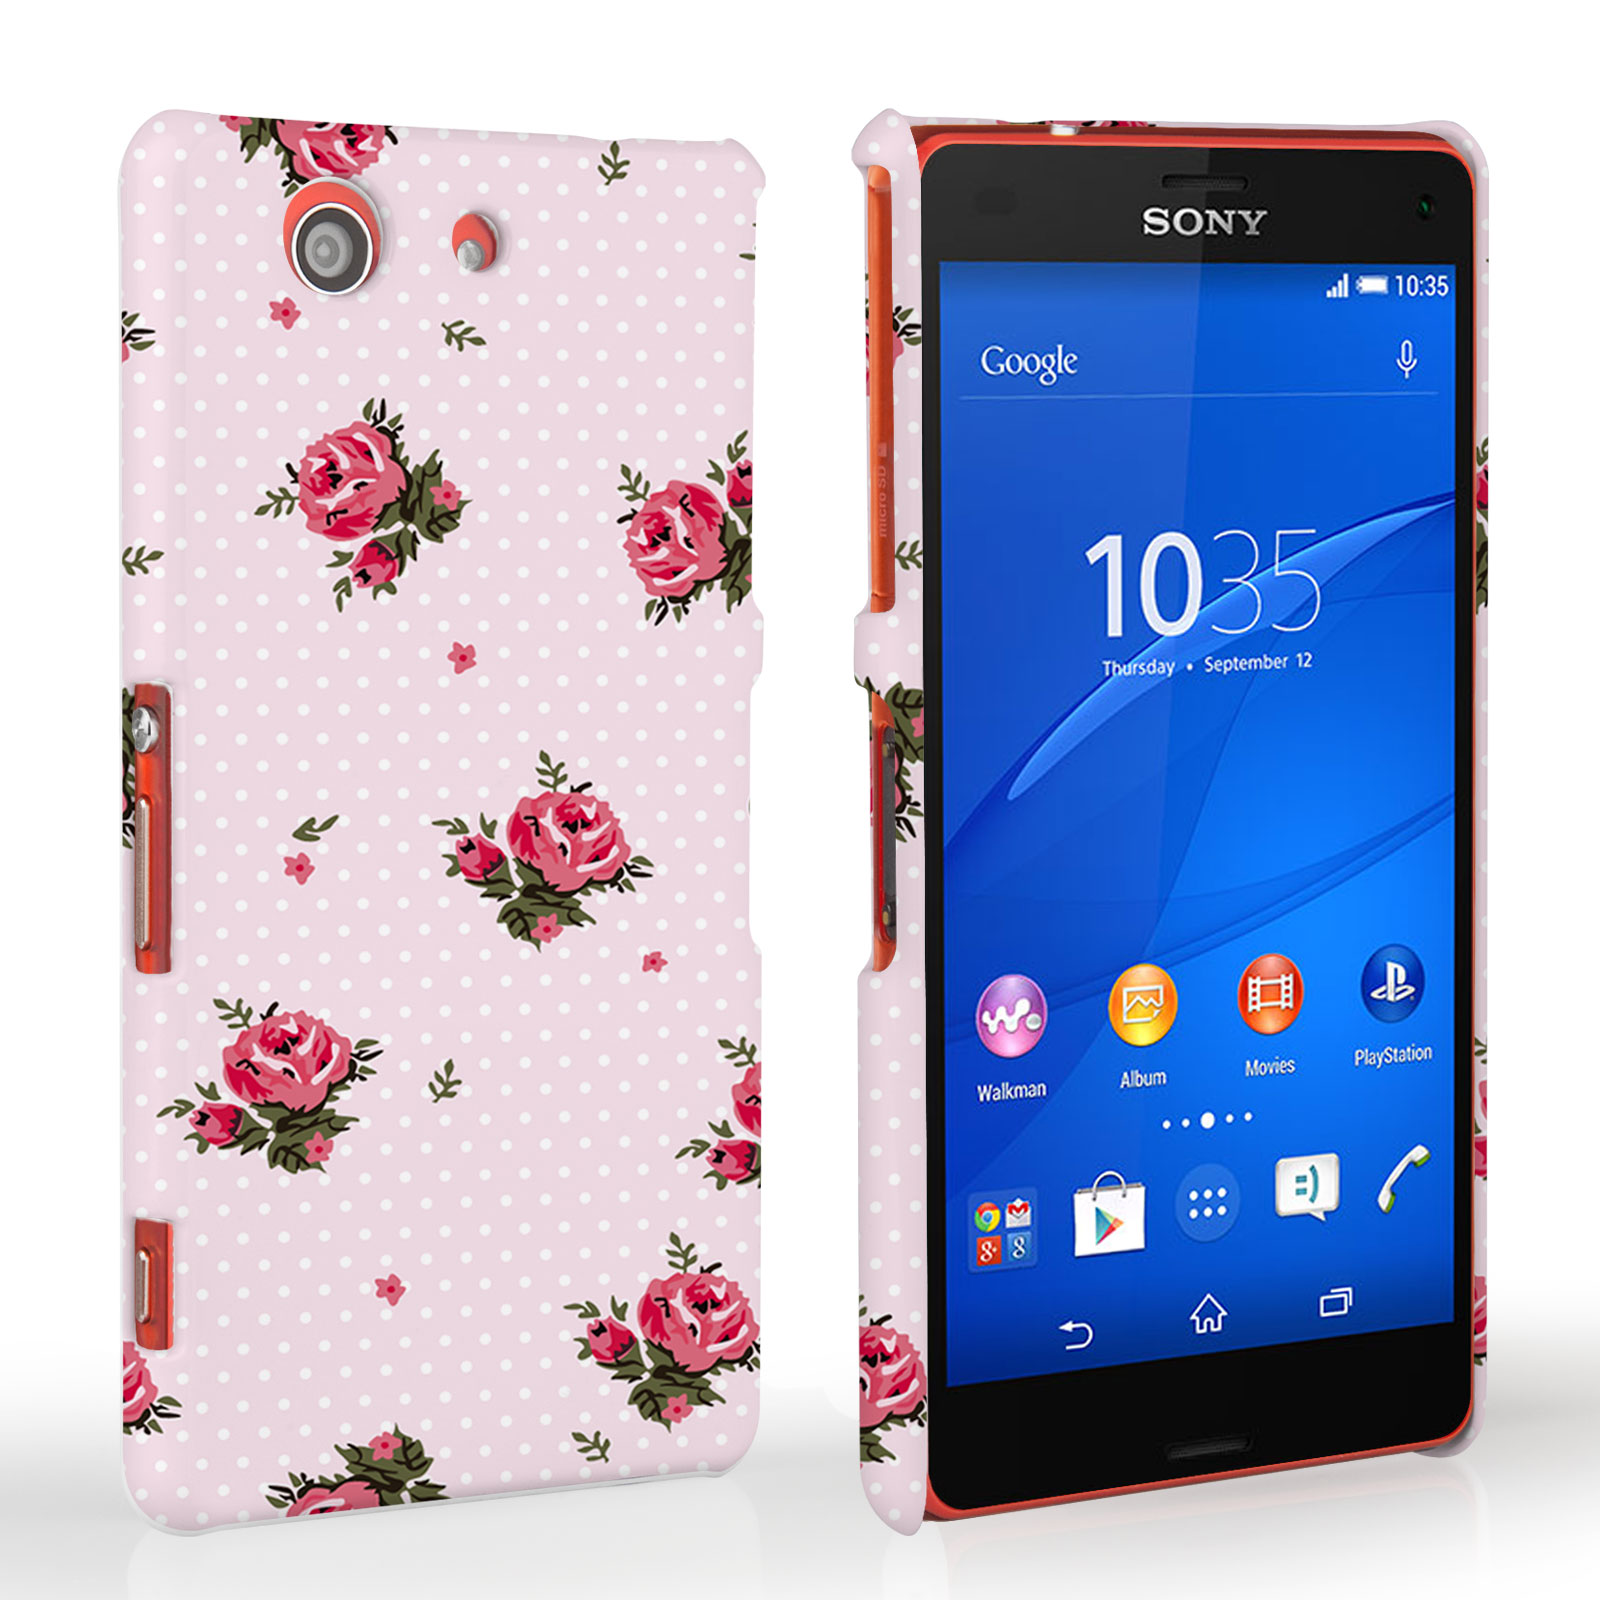 Caseflex Sony Xperia Z3 Compact Vintage Roses Polka Dot Wallpaper Hard Case – Pink